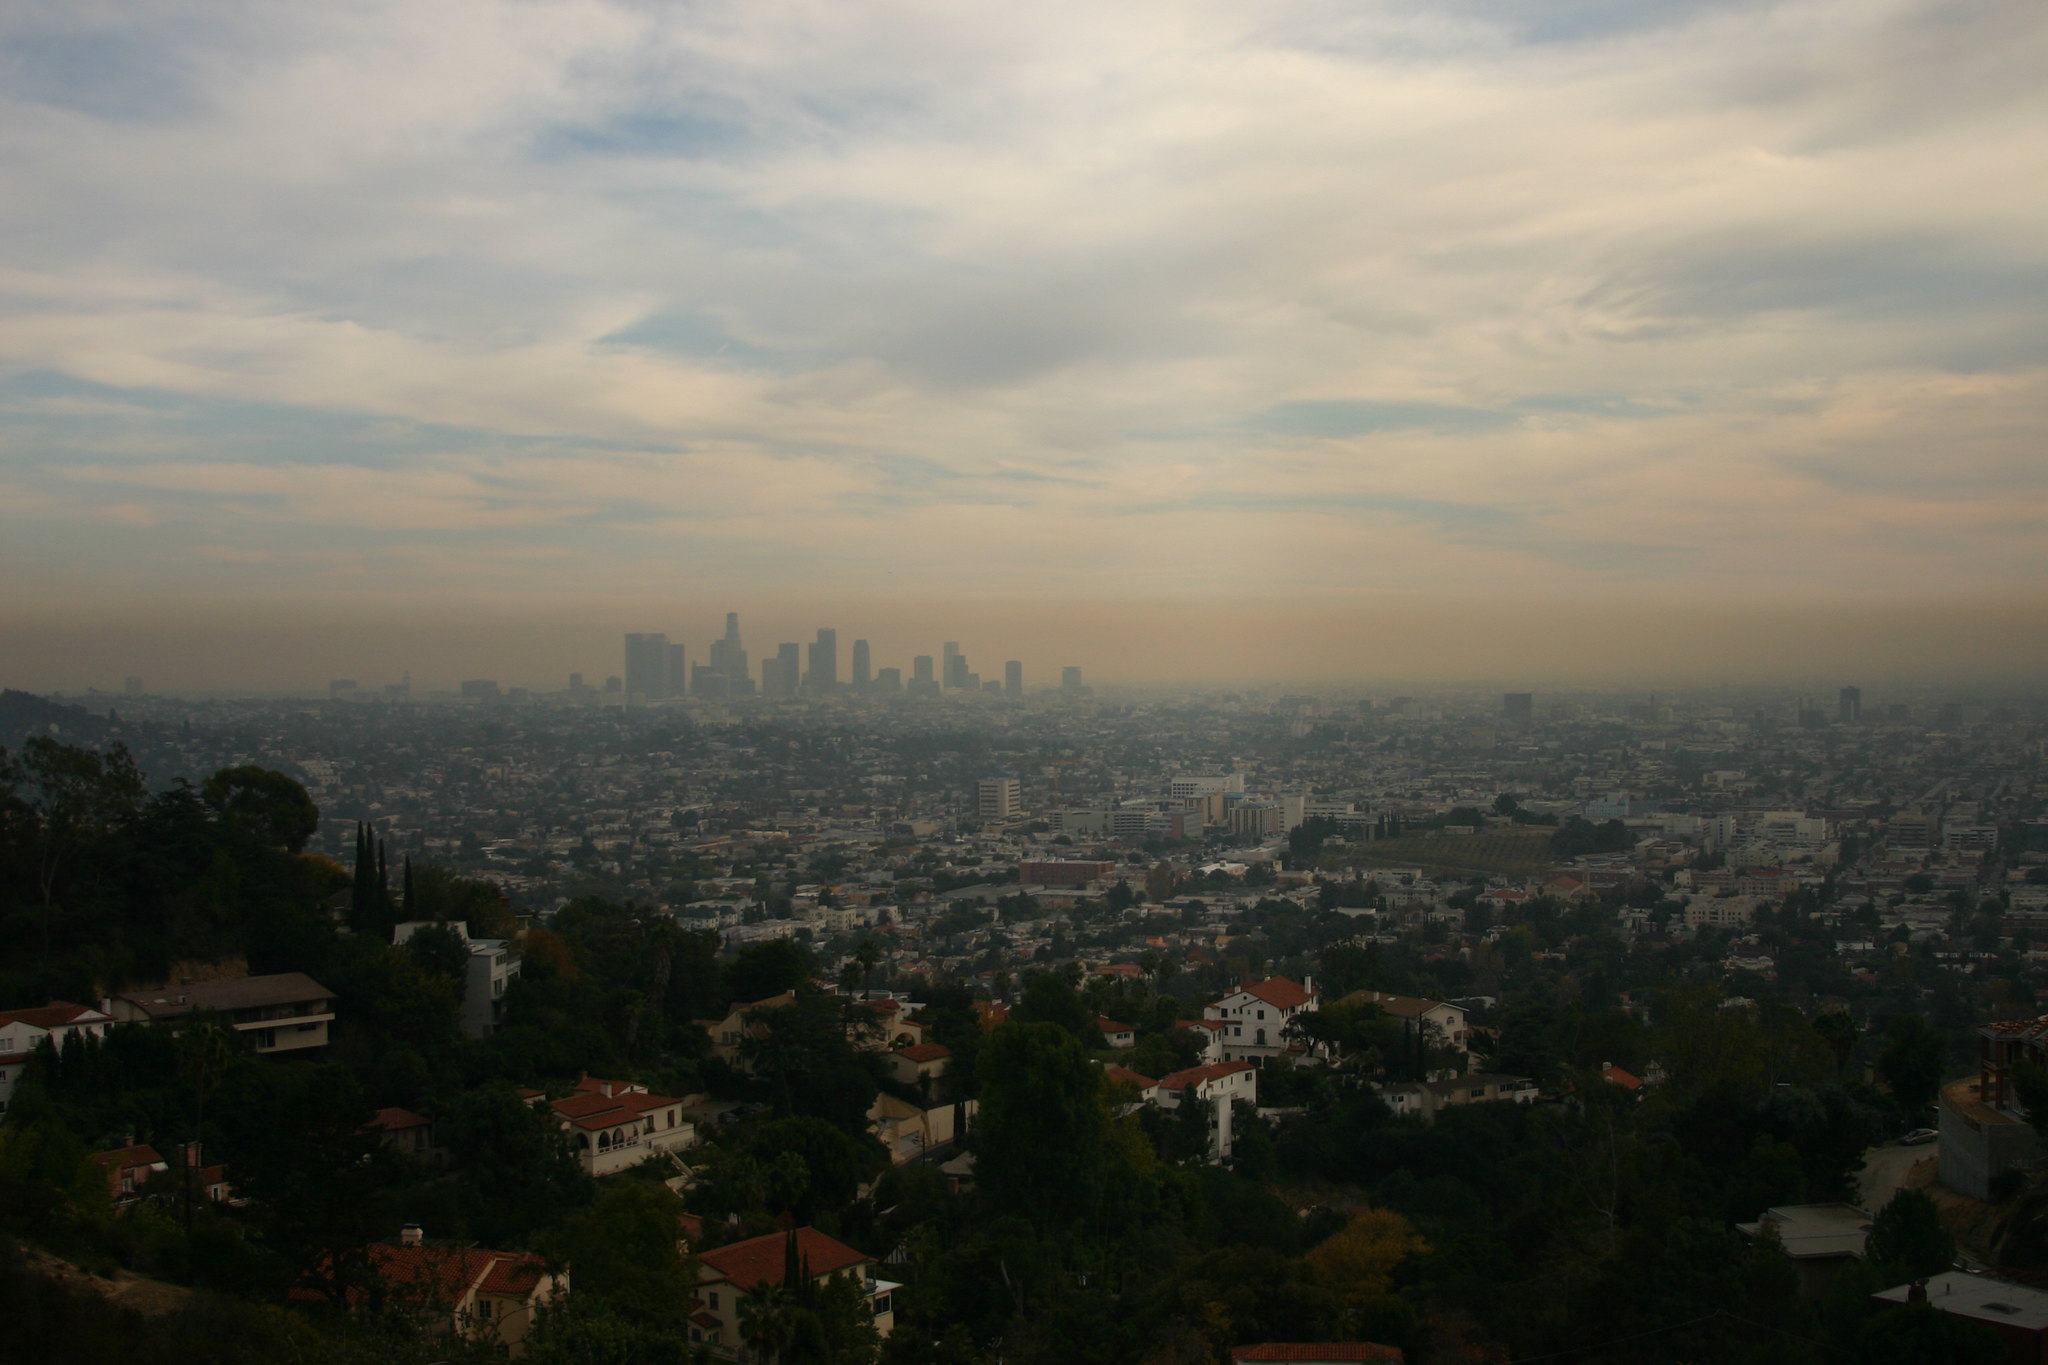 Smog over Los Angeles | Photo by Steven Buss via Flickr